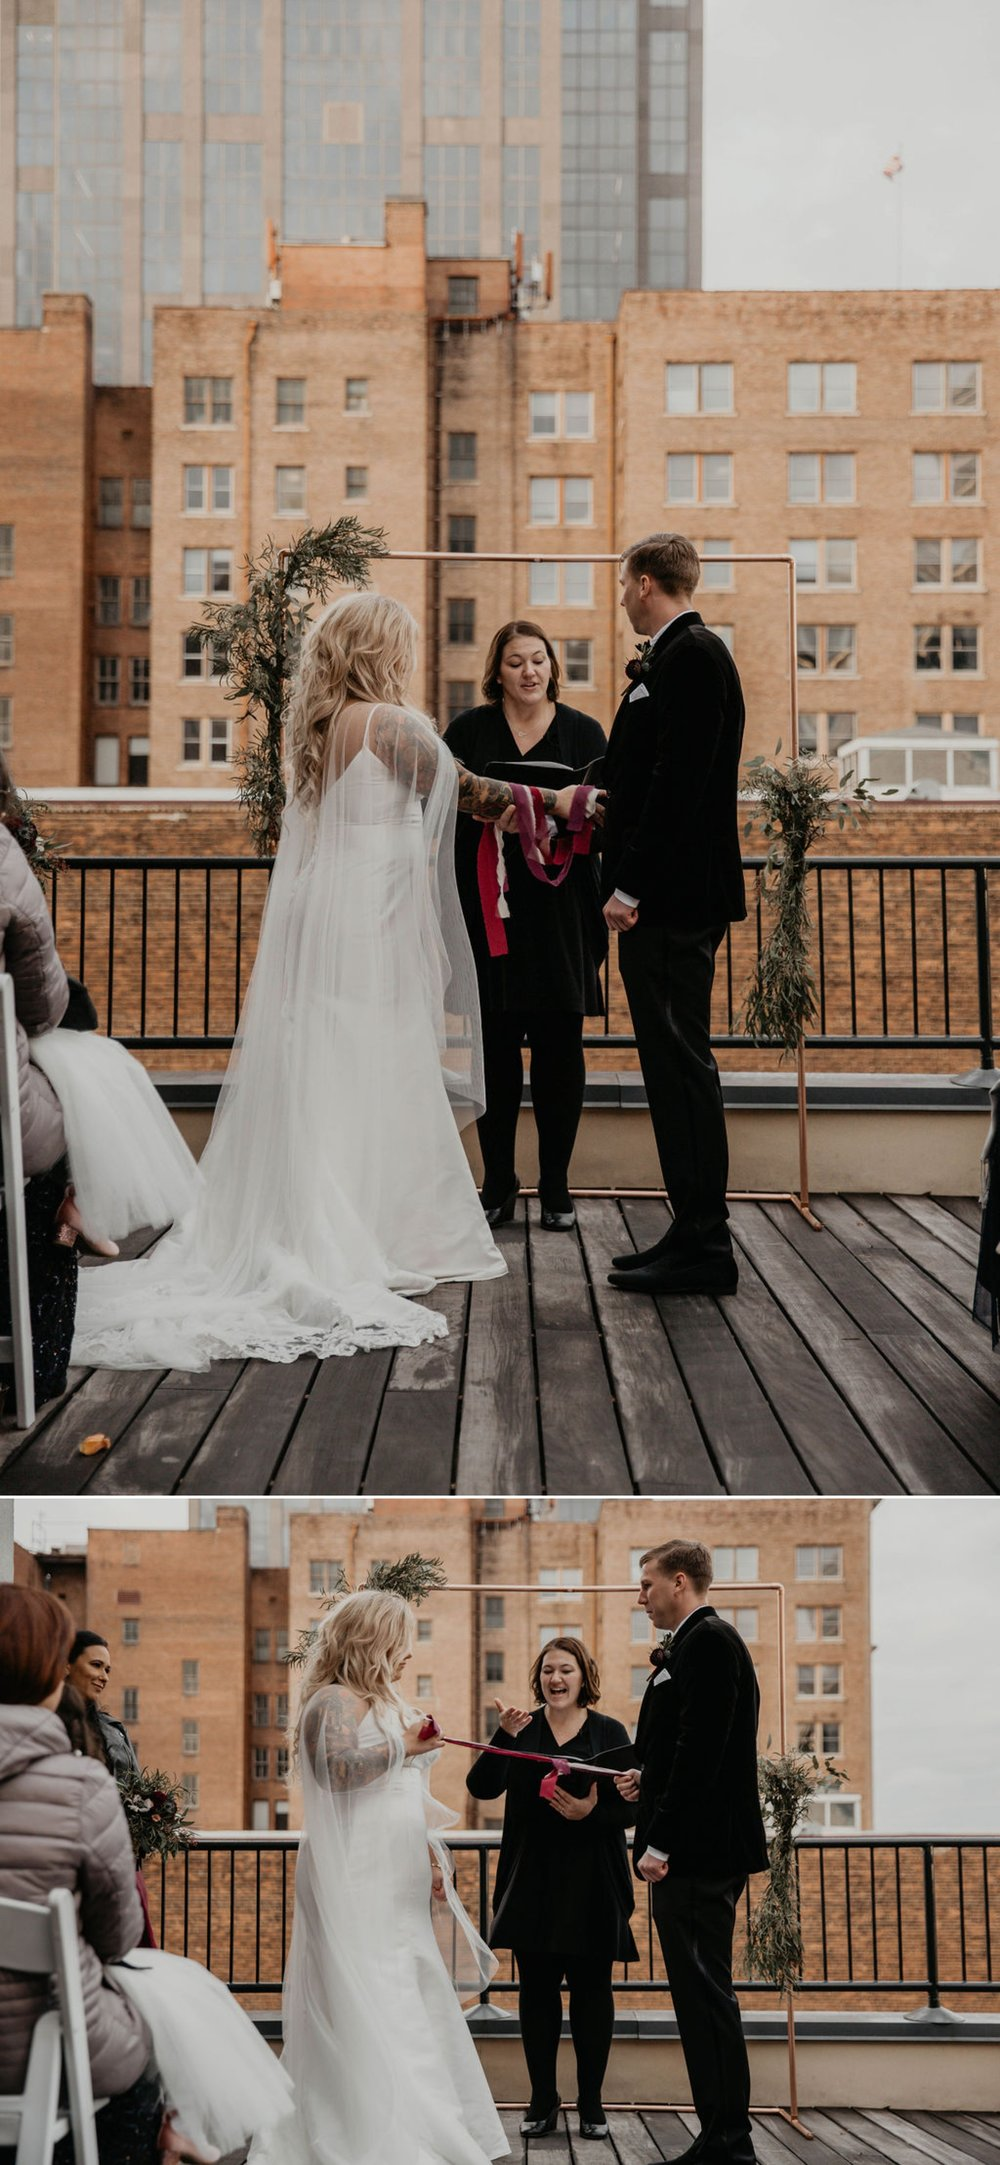 Tying the knot tradition - Wedding Ceremony on a rooftop terrace with the skyline in the background - Matt Smarsh and Johanna Dye - Raleigh North Carolina Urban Downtown Wedding at the Glass Box at 230